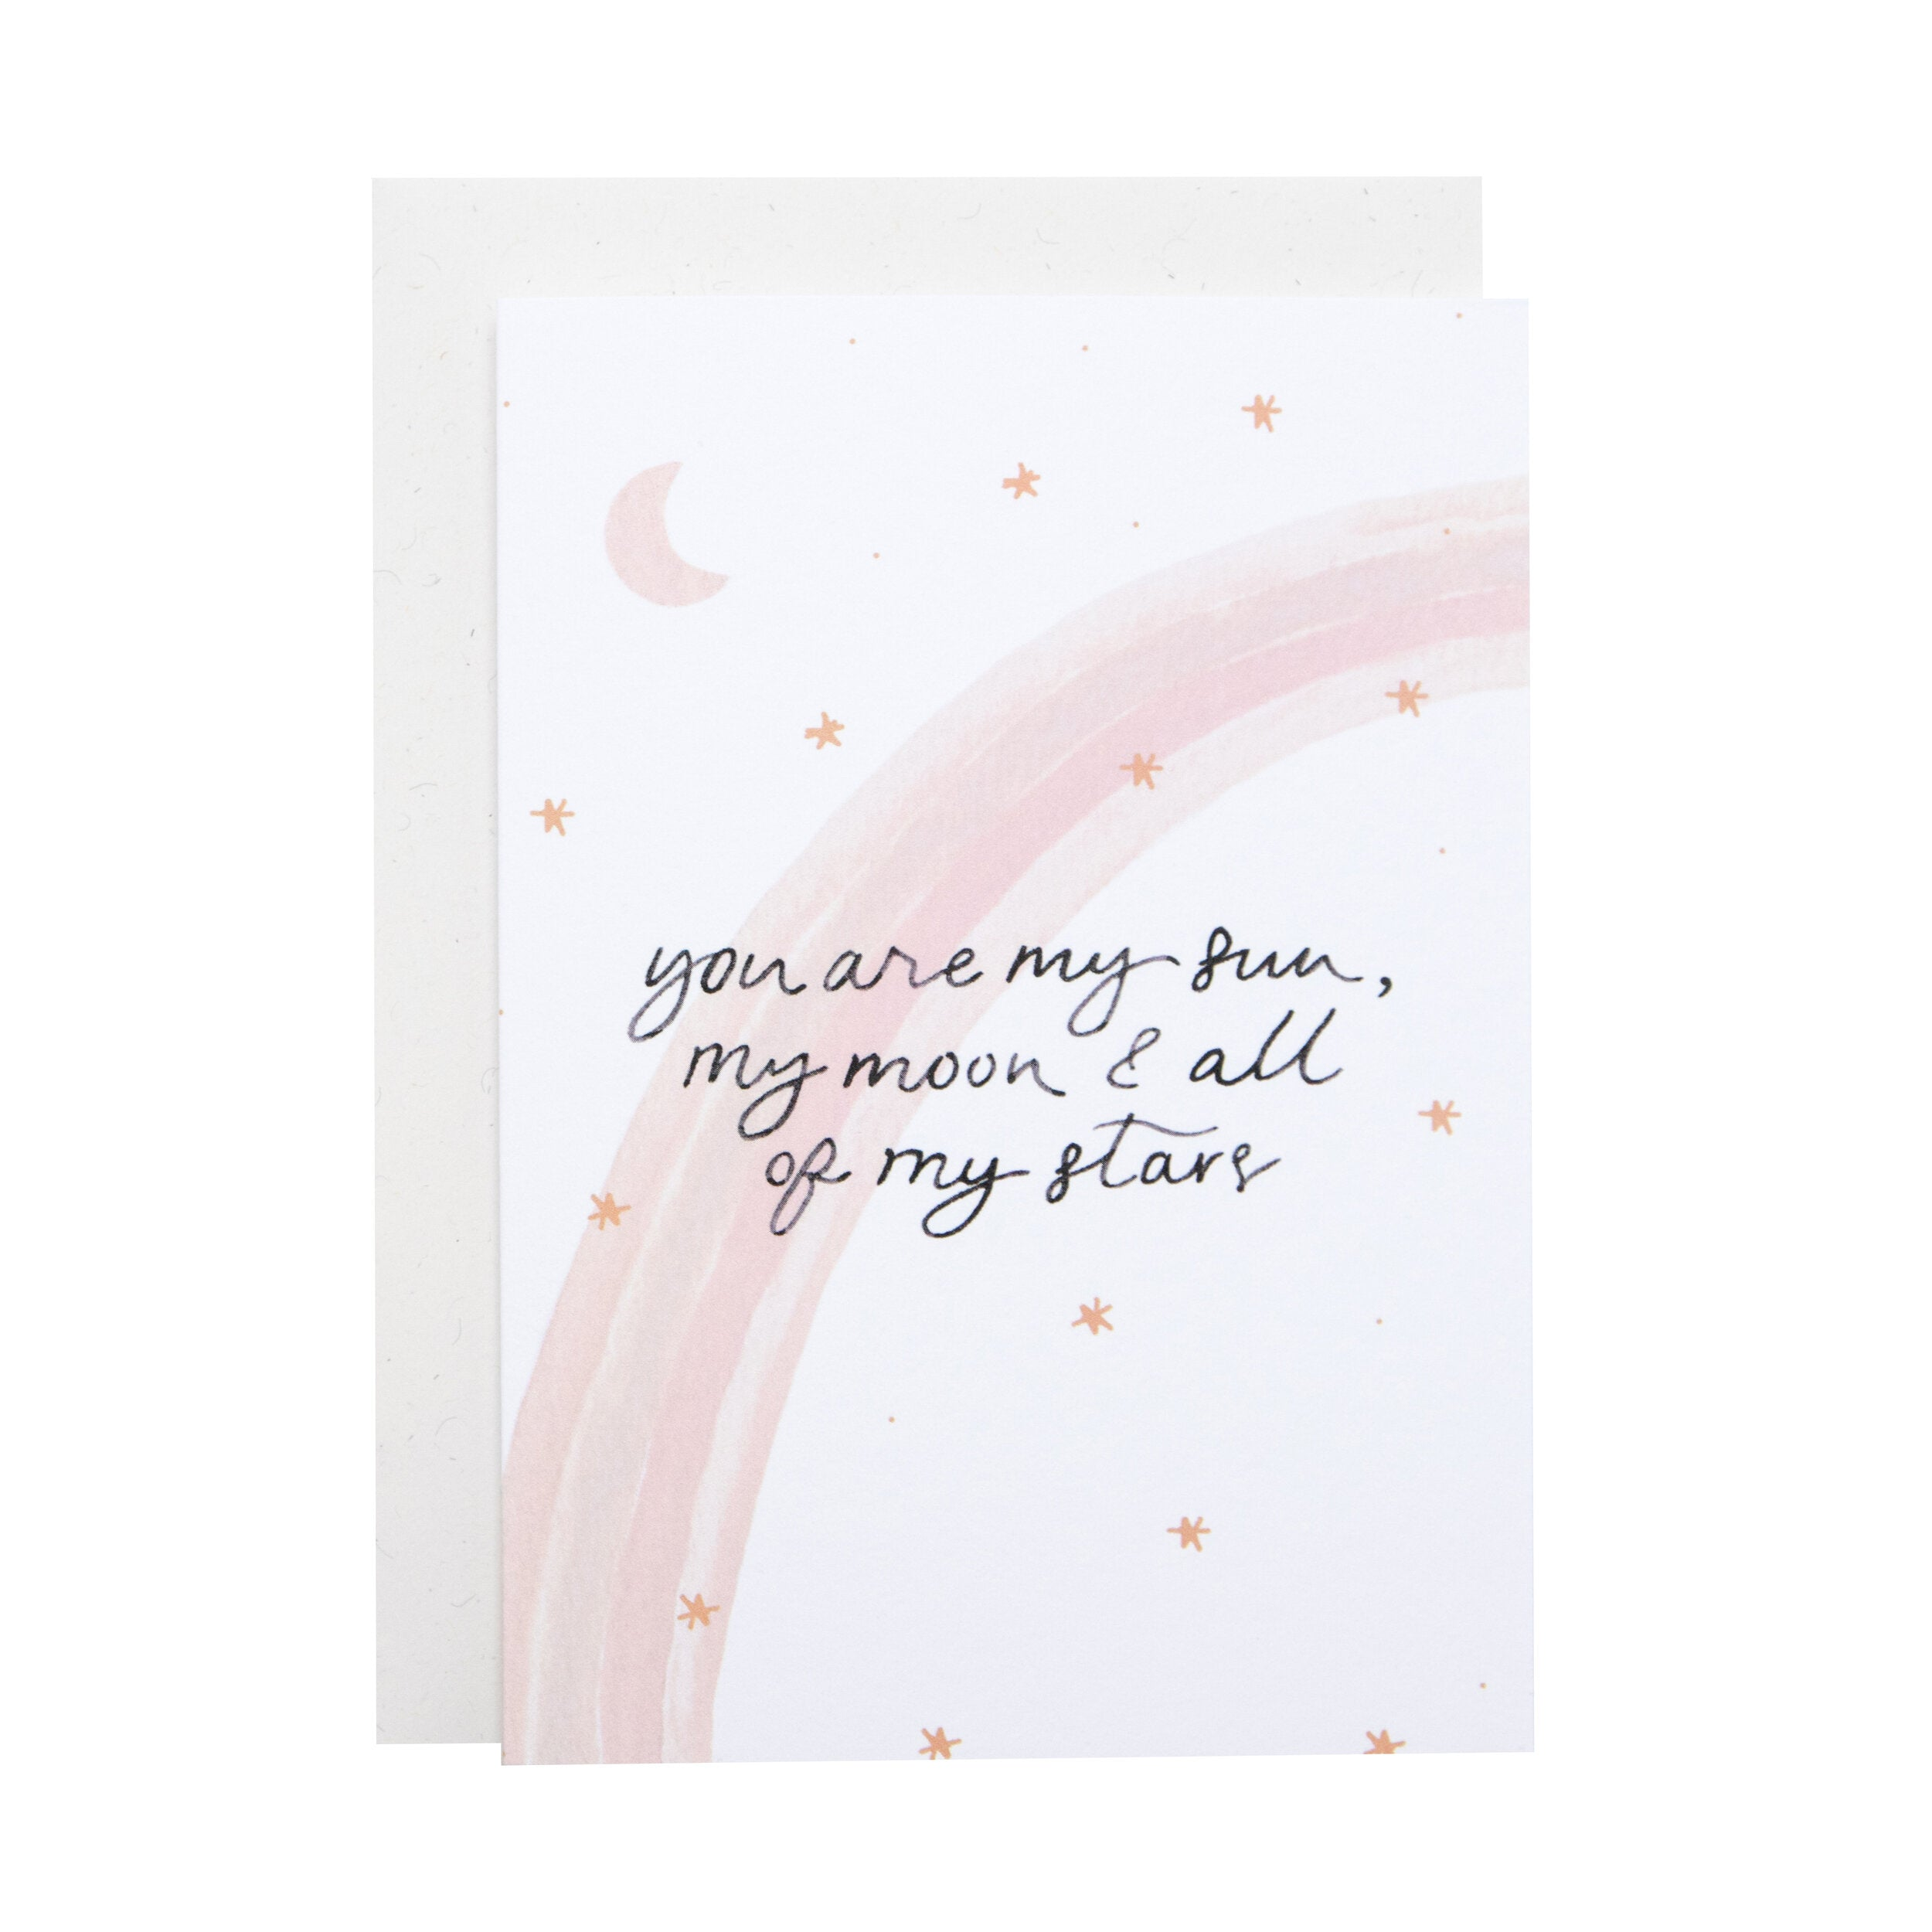 'You are my sun...' Greetings Card